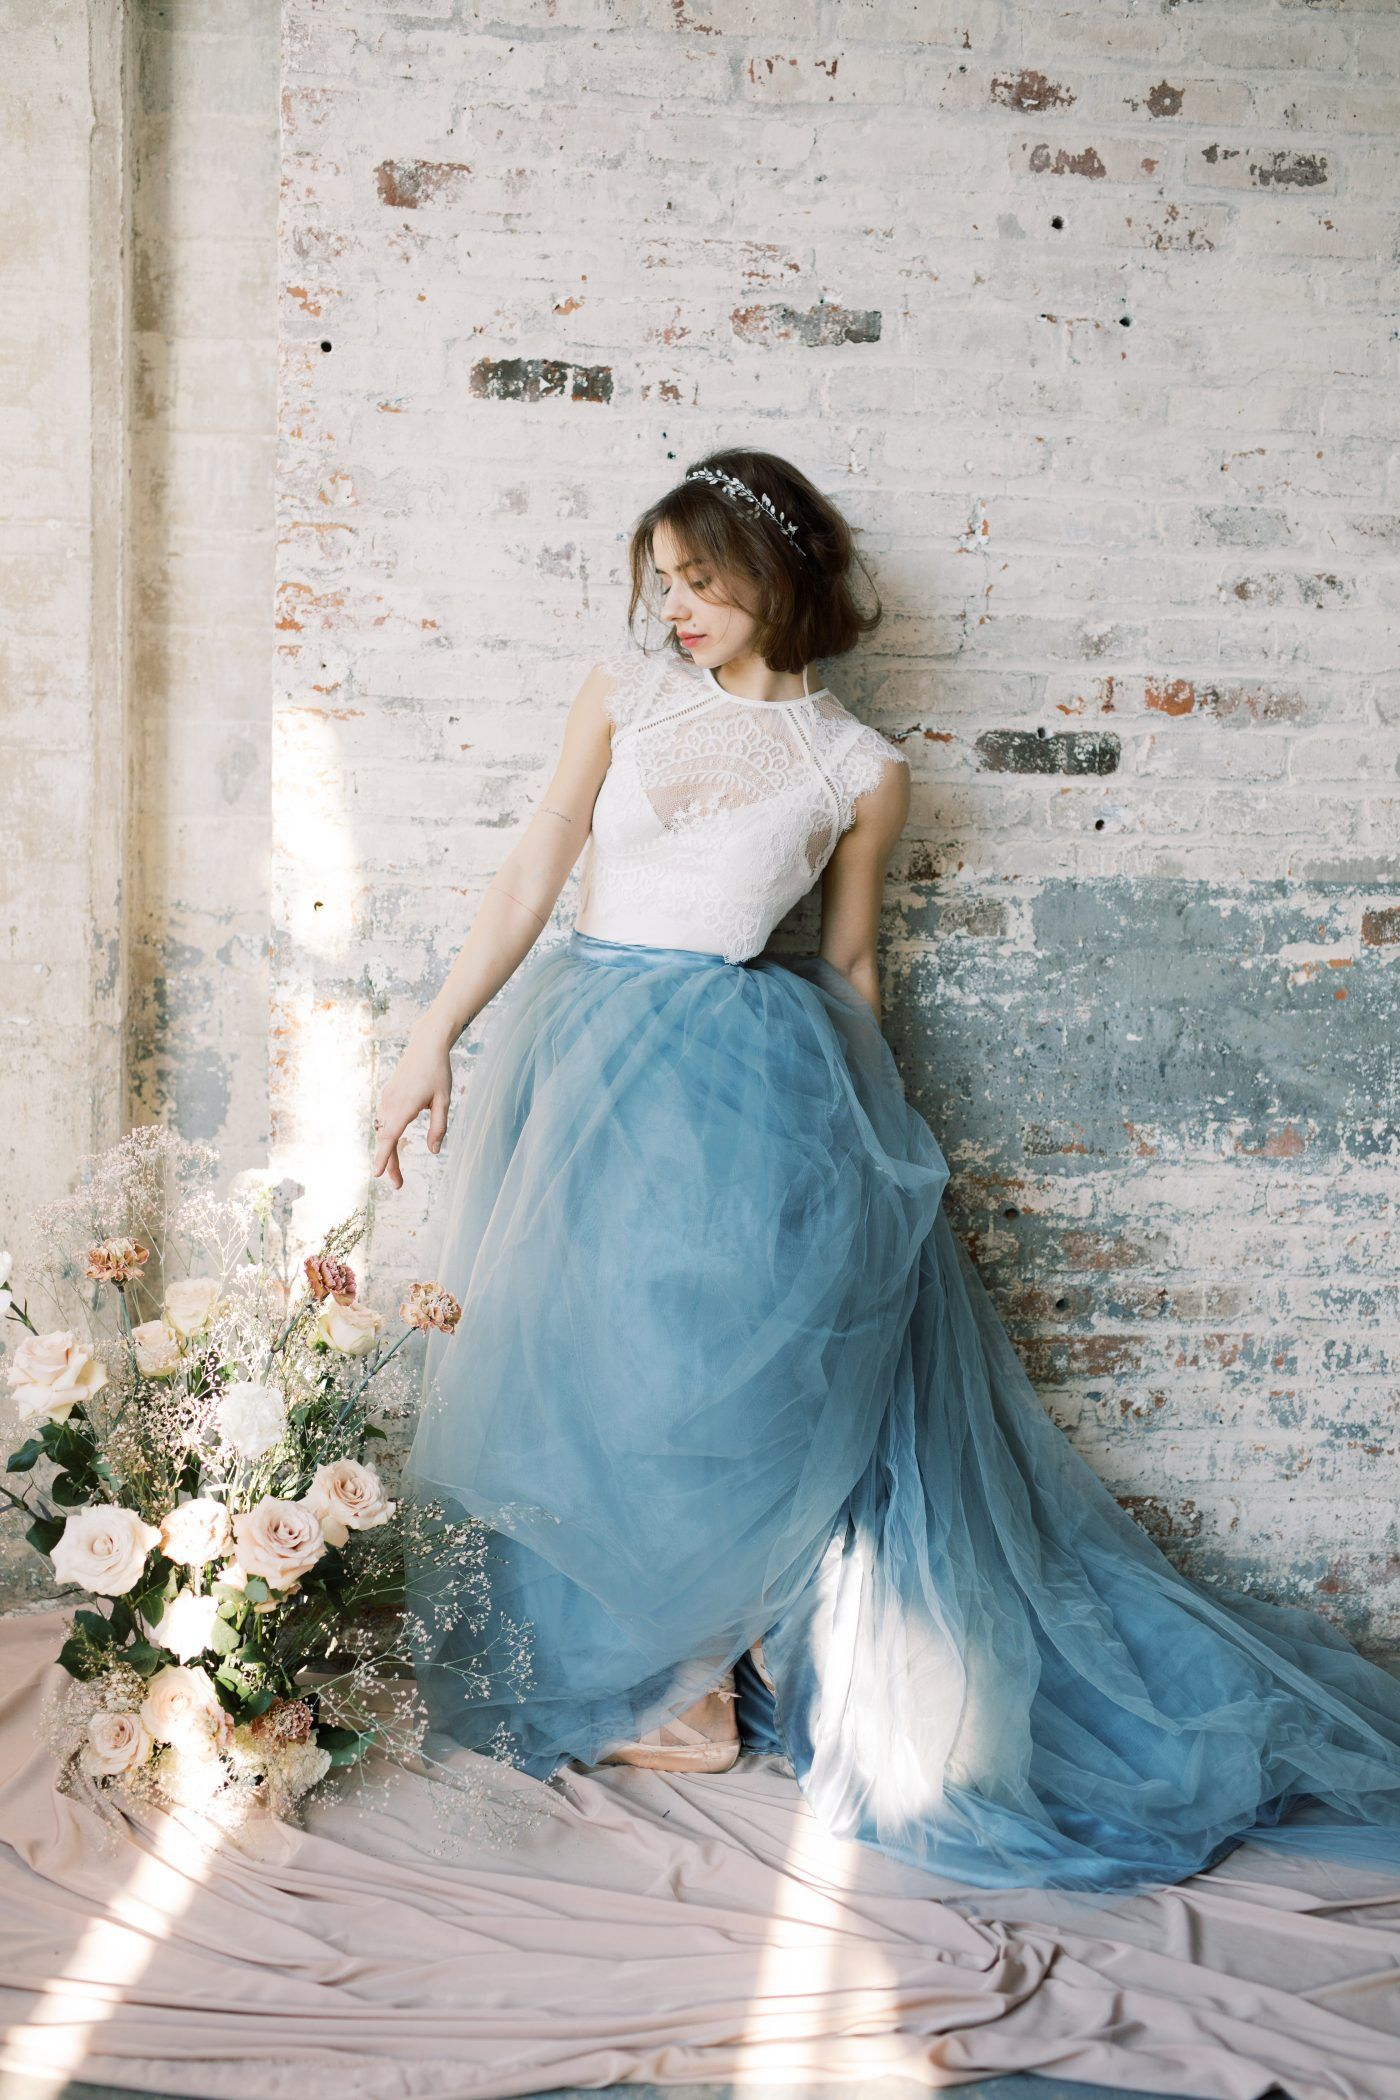 A Charming Shoot Showcasing A Graceful Ballerina Bride Blush Tones Blue Tulle And A Vintage Wedding Ring Once Wed Wedding Dress Trends Tulle Wedding Dress Alternative Wedding Dresses [ 2100 x 1400 Pixel ]